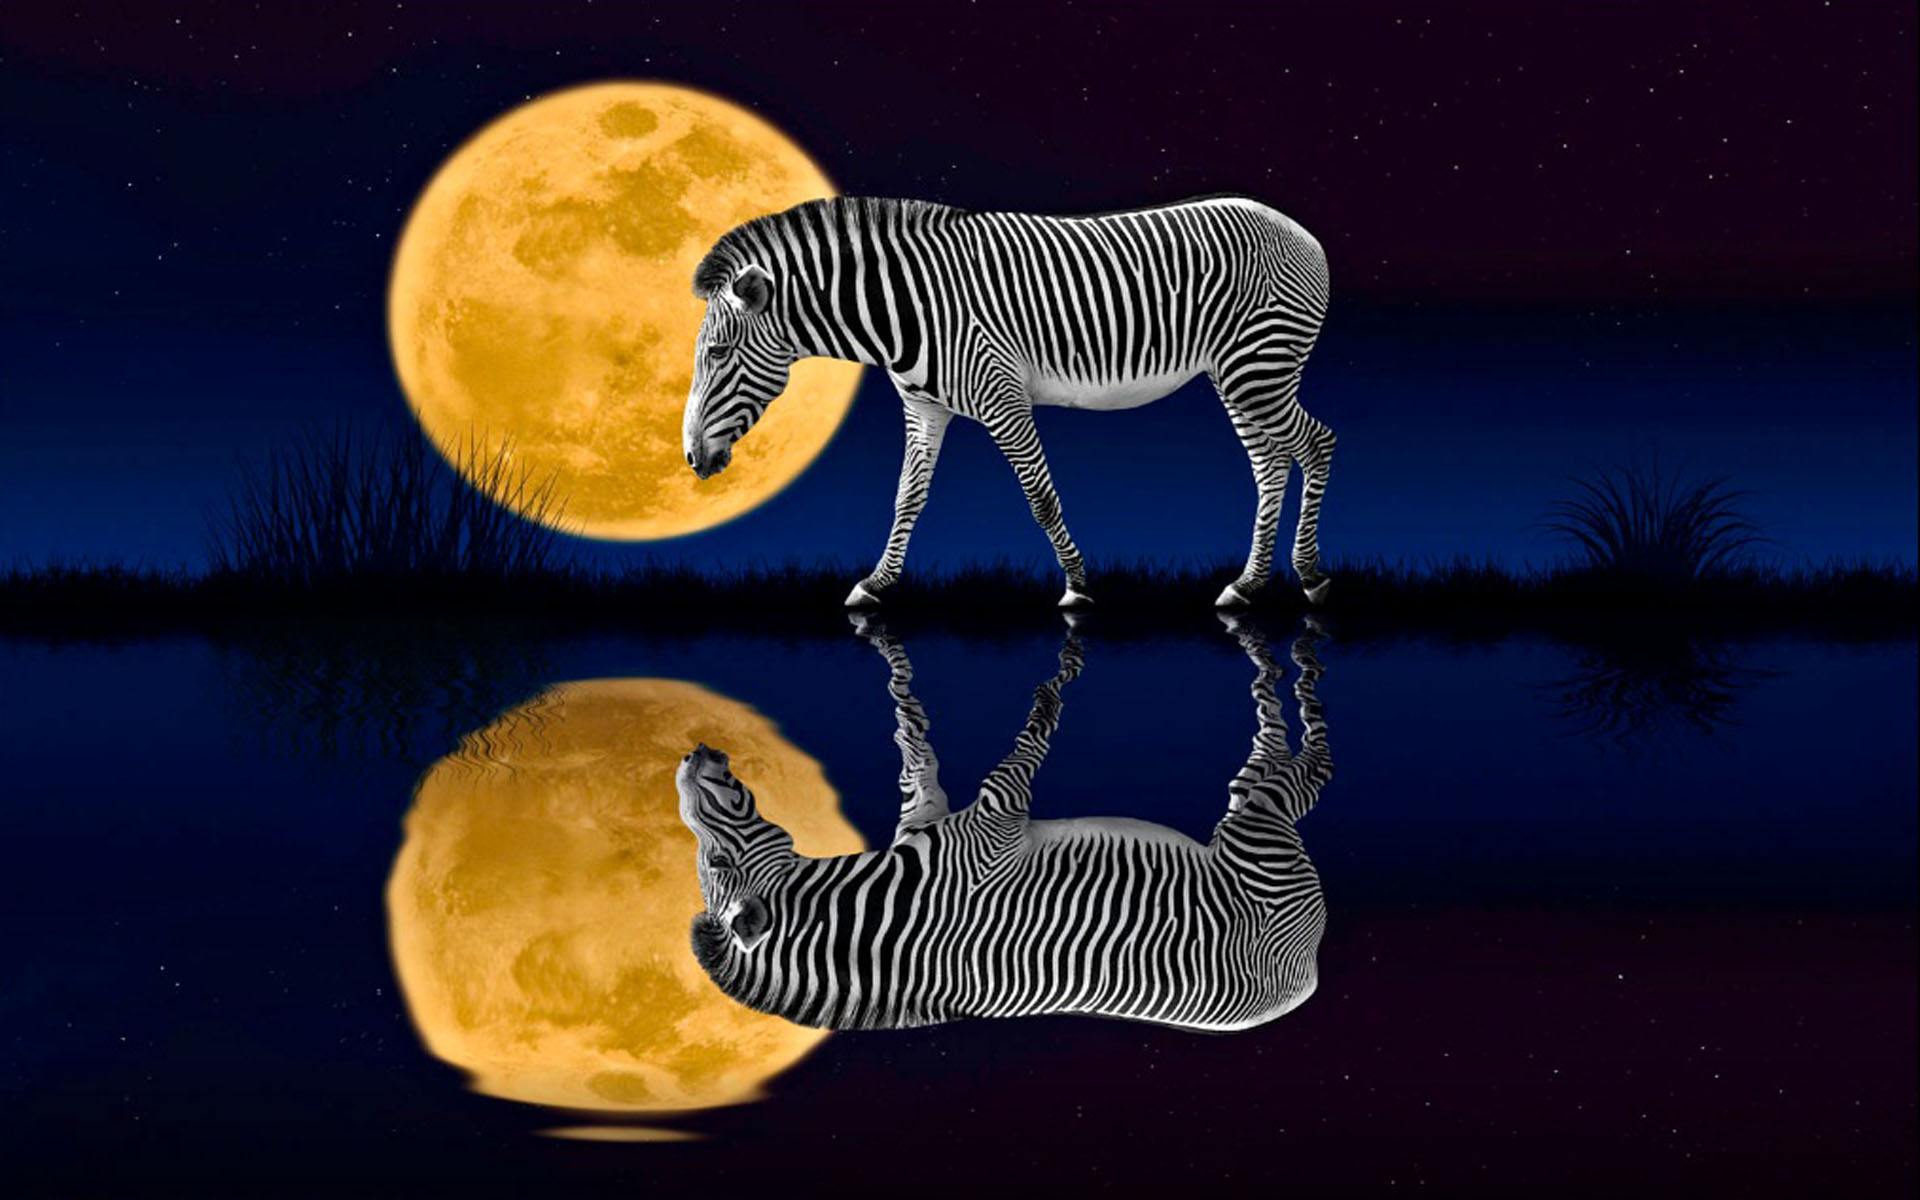 Download Cars Wallpapers For Mobile Night Zebra Full Moon Reflected In The Water Desktop